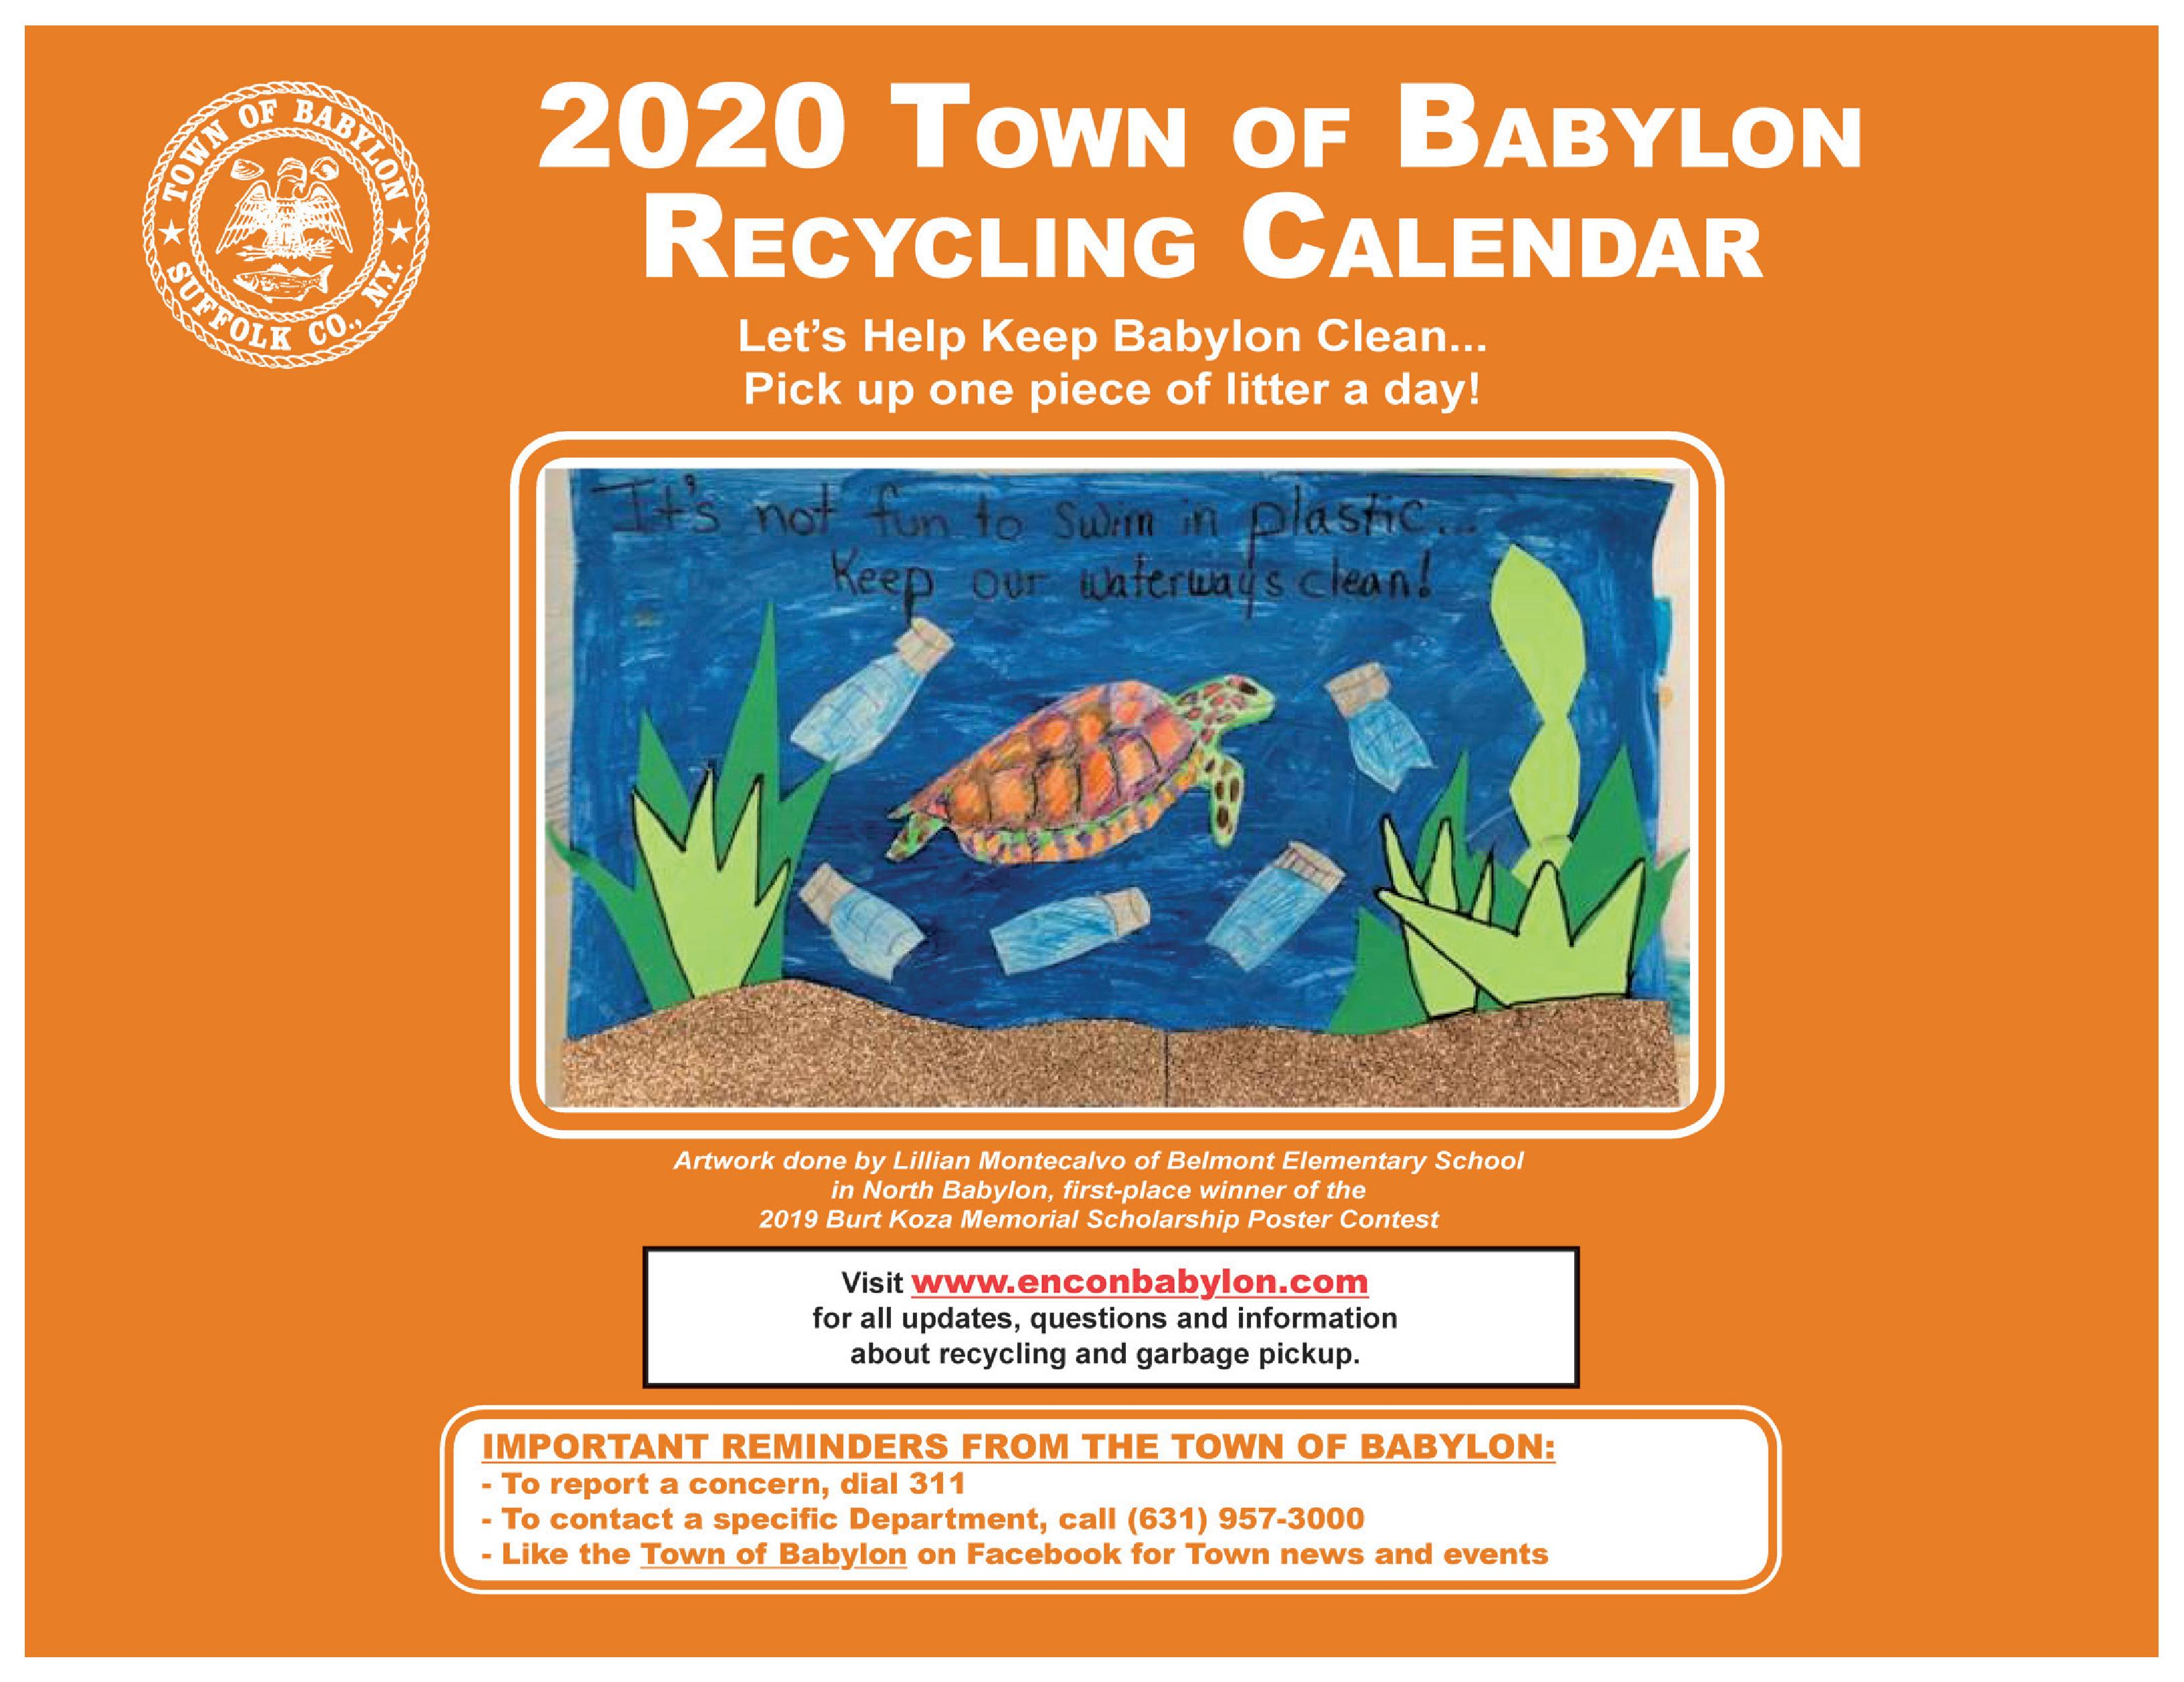 2020 Recycling Calendar Cover Page Opens in new window